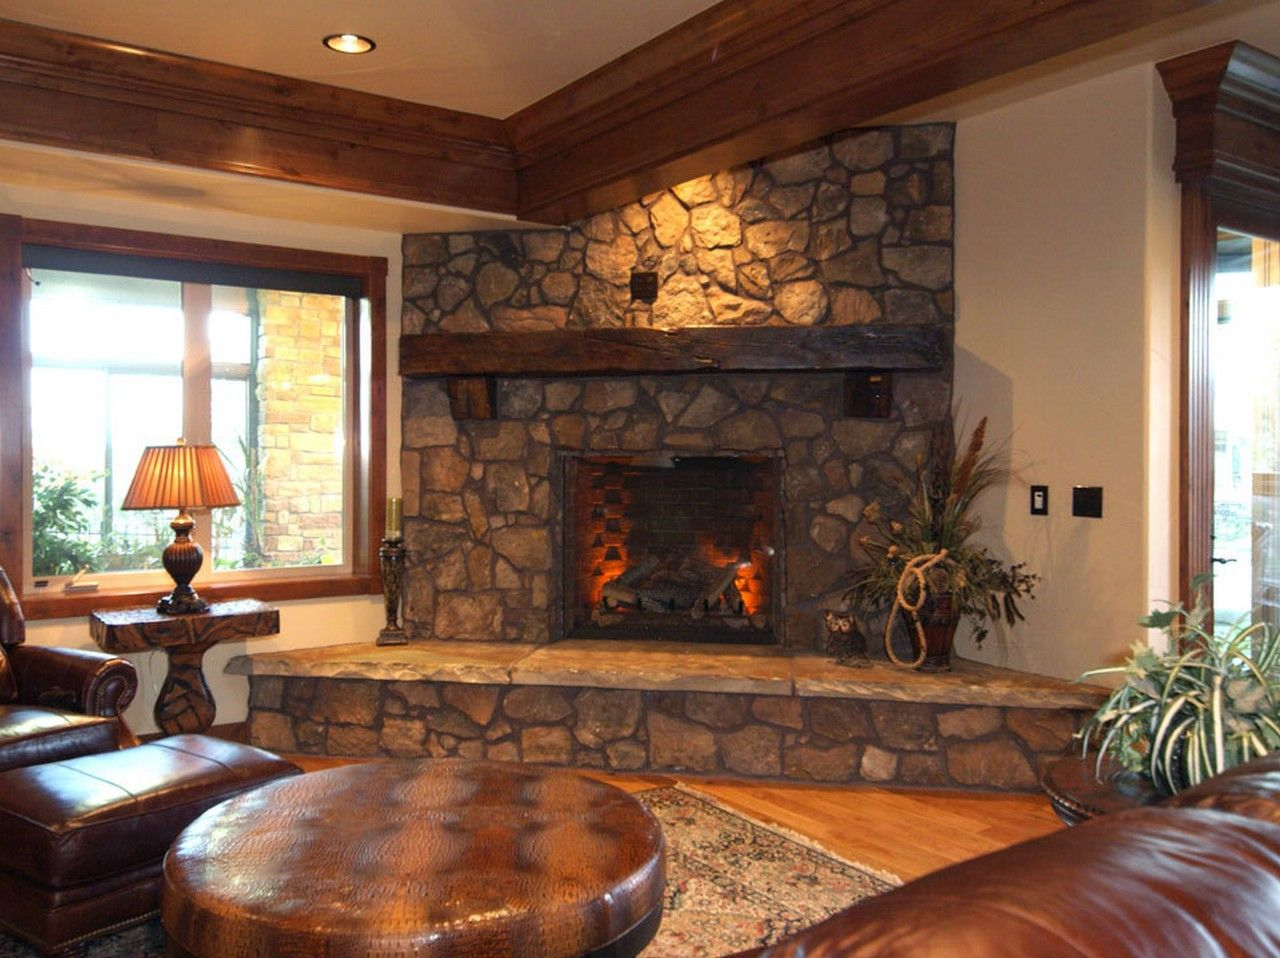 Antique Living Room Designs Classy Alluring Cultured Stone Fireplace Style Excellent Stone Fireplace Design Inspiration